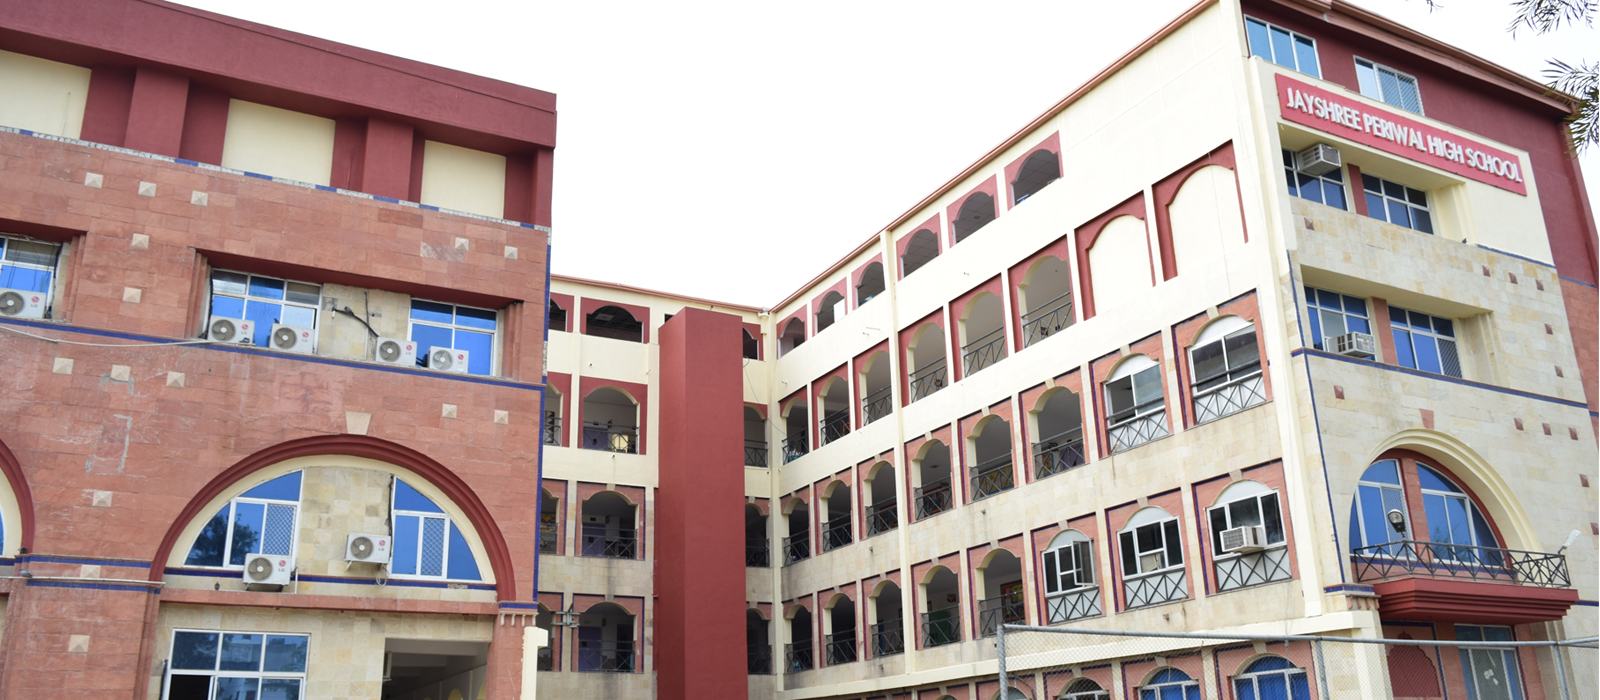 Jayshree Periwal High School